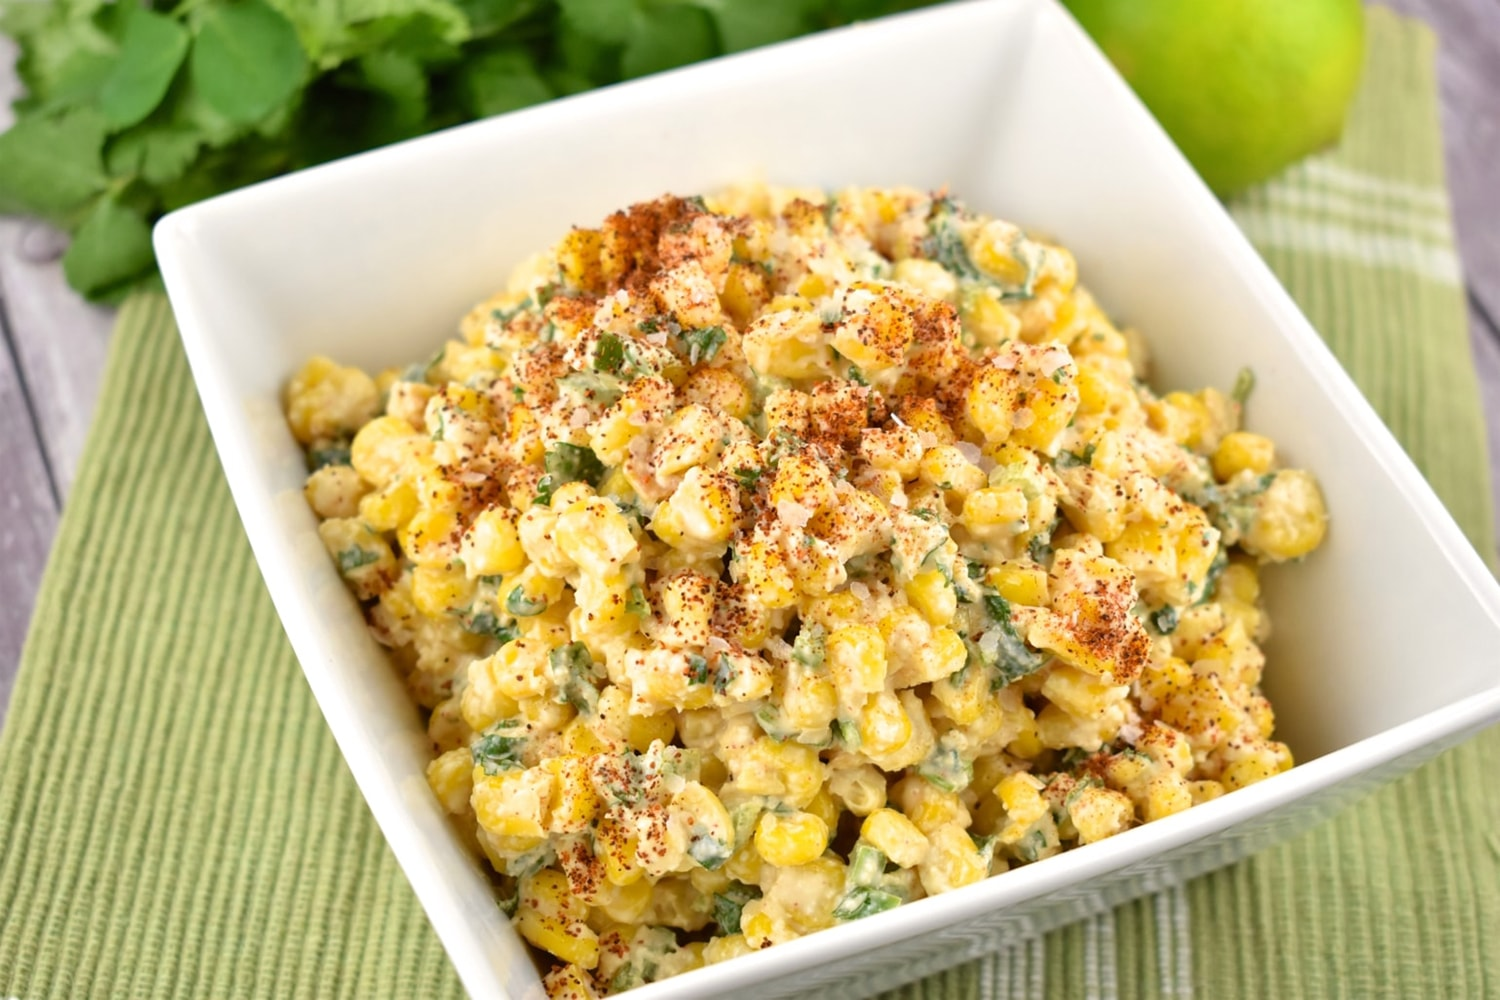 Weight Watchers Mexican Street Corn Salad on a wooden background.